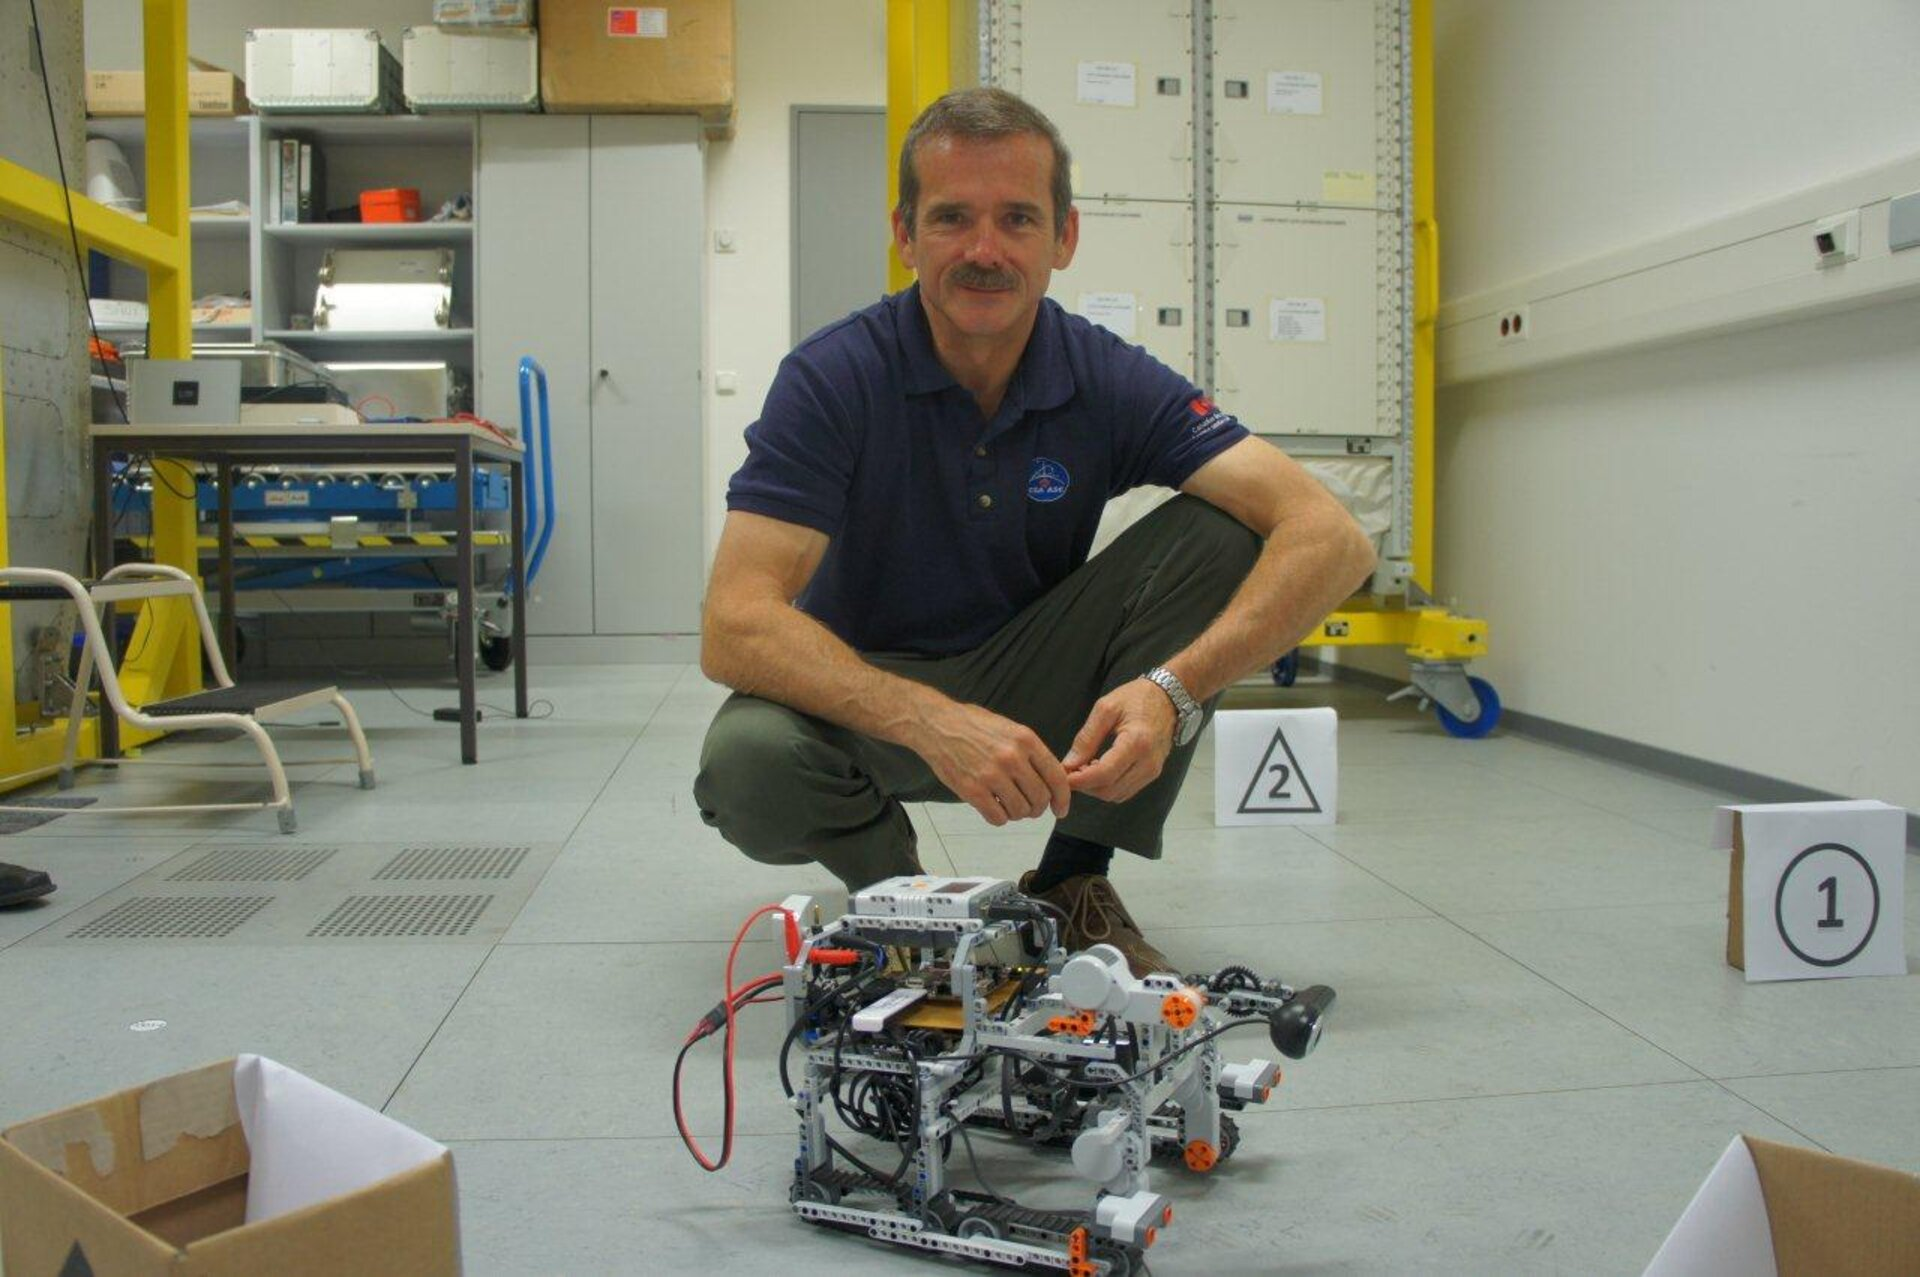 Chris Hadfield at EAC